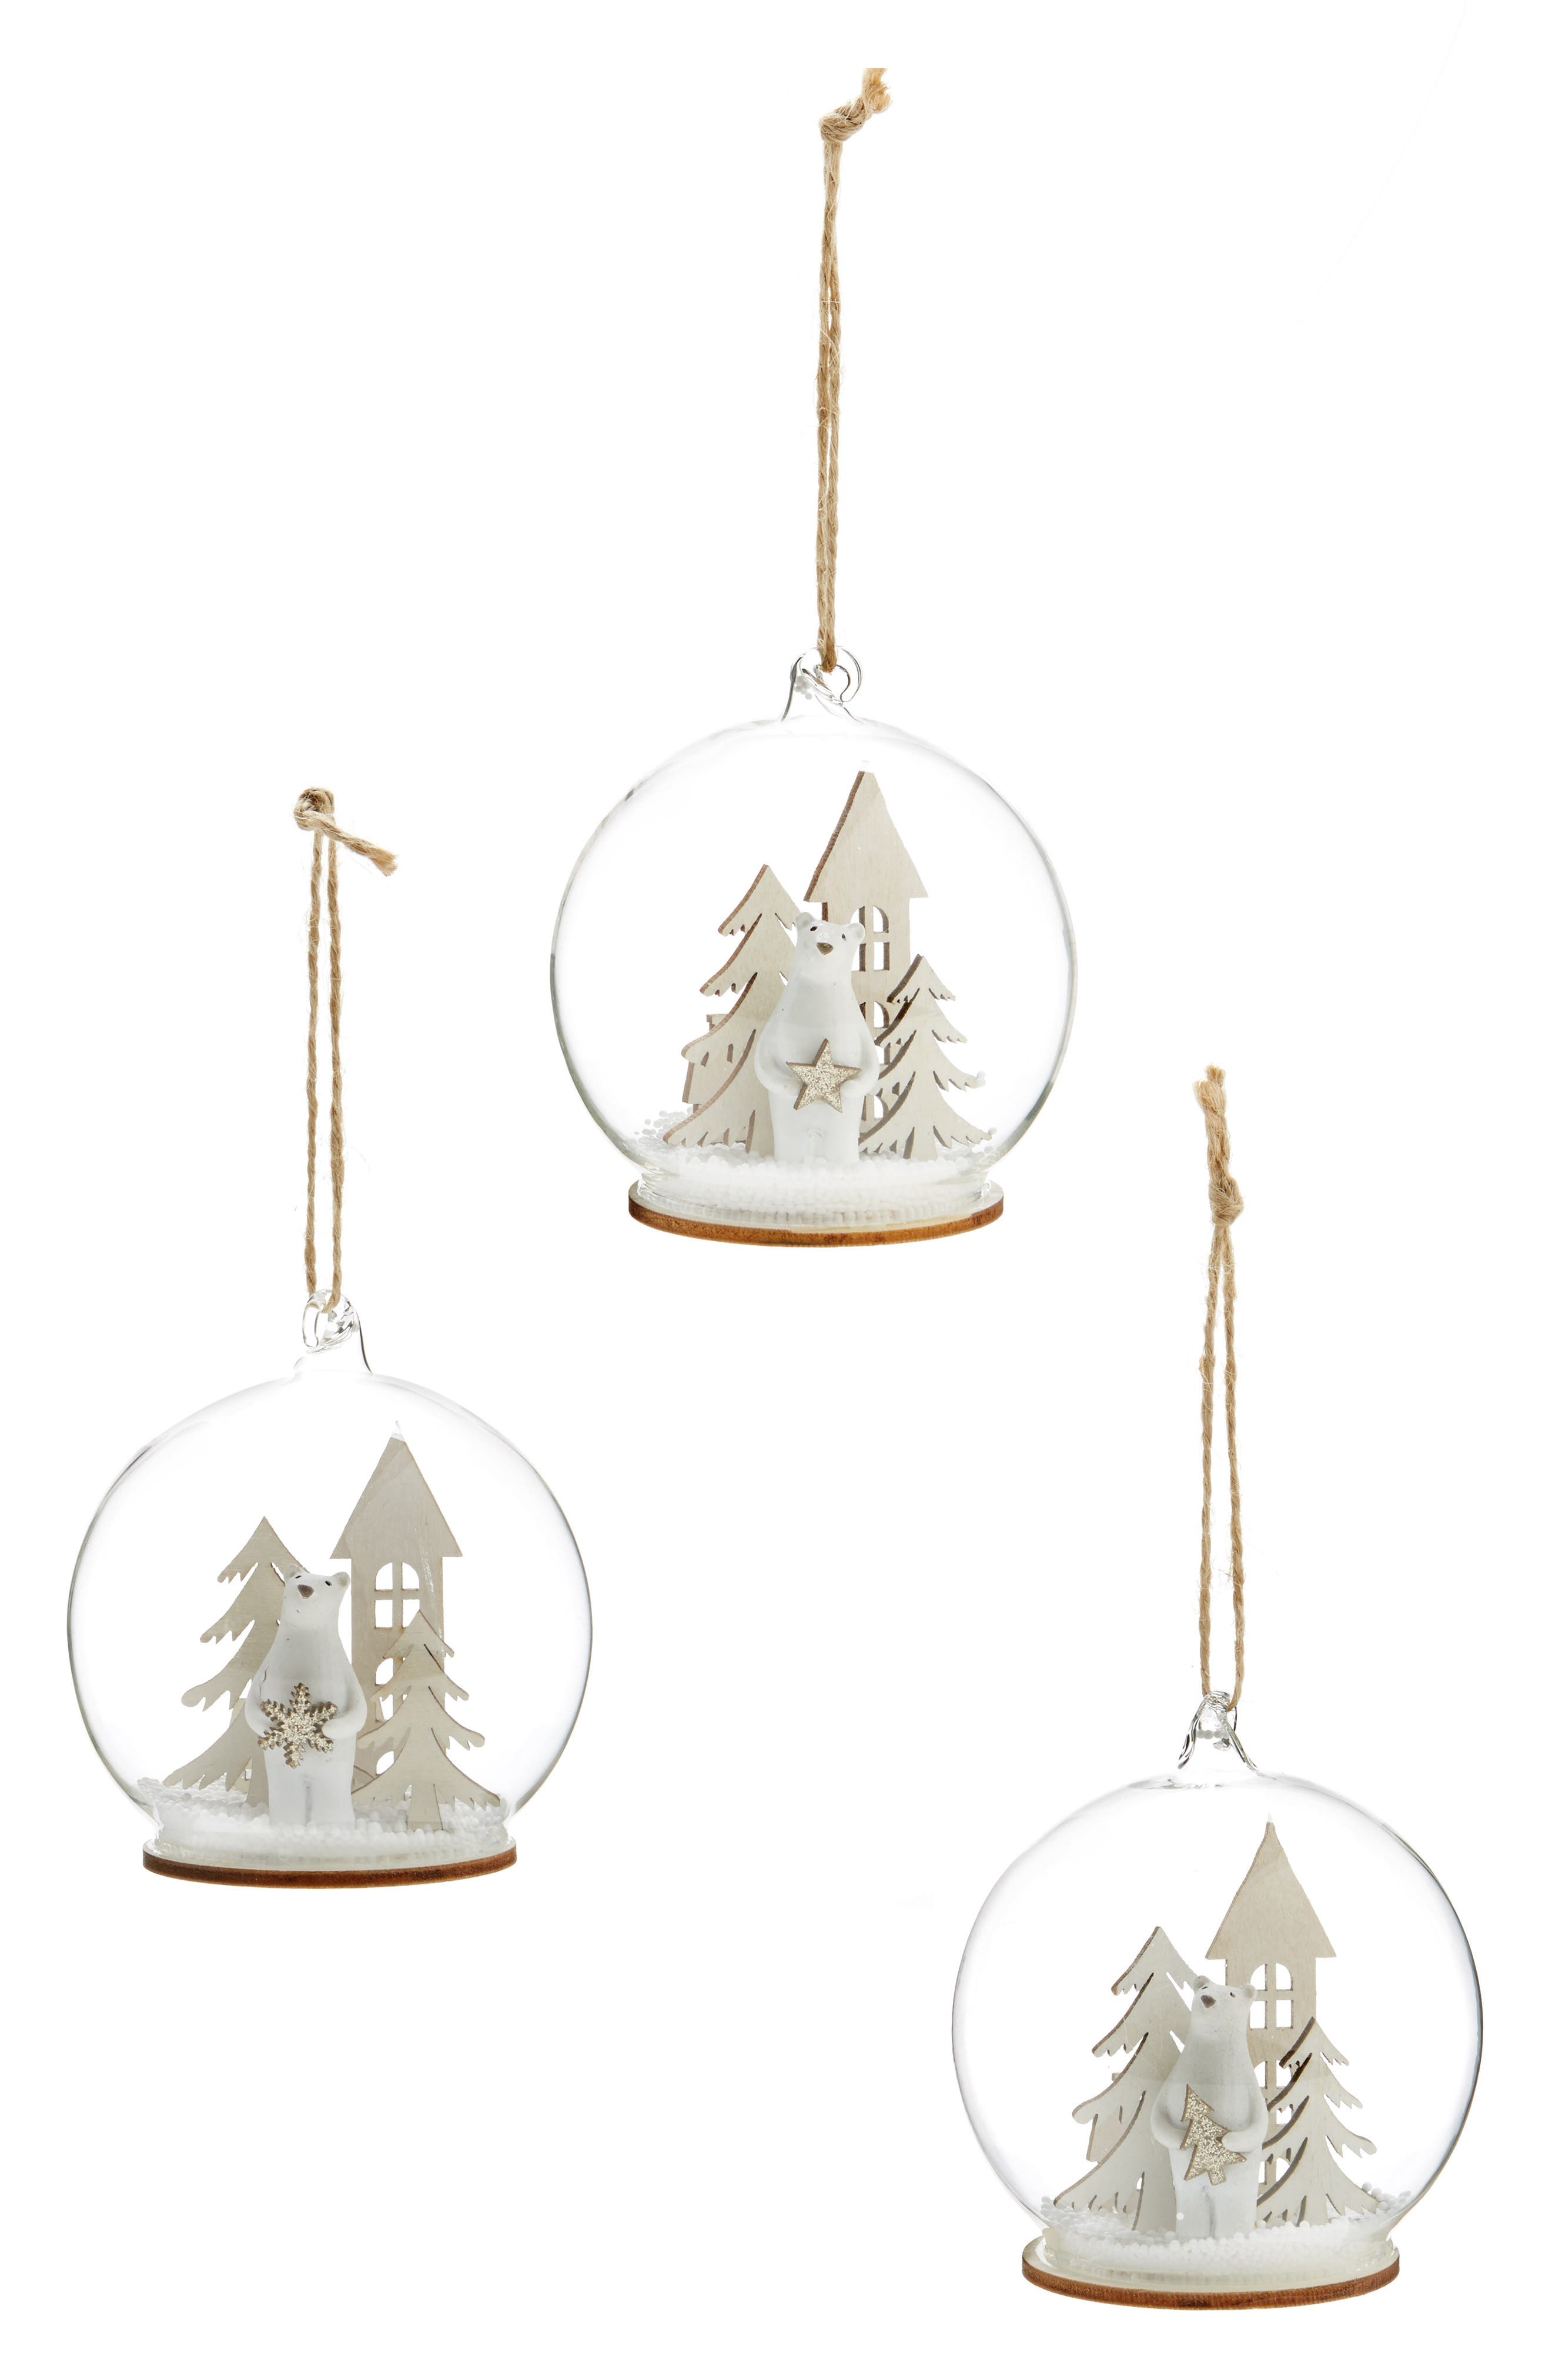 Arty Set of 3 Tree Ornaments